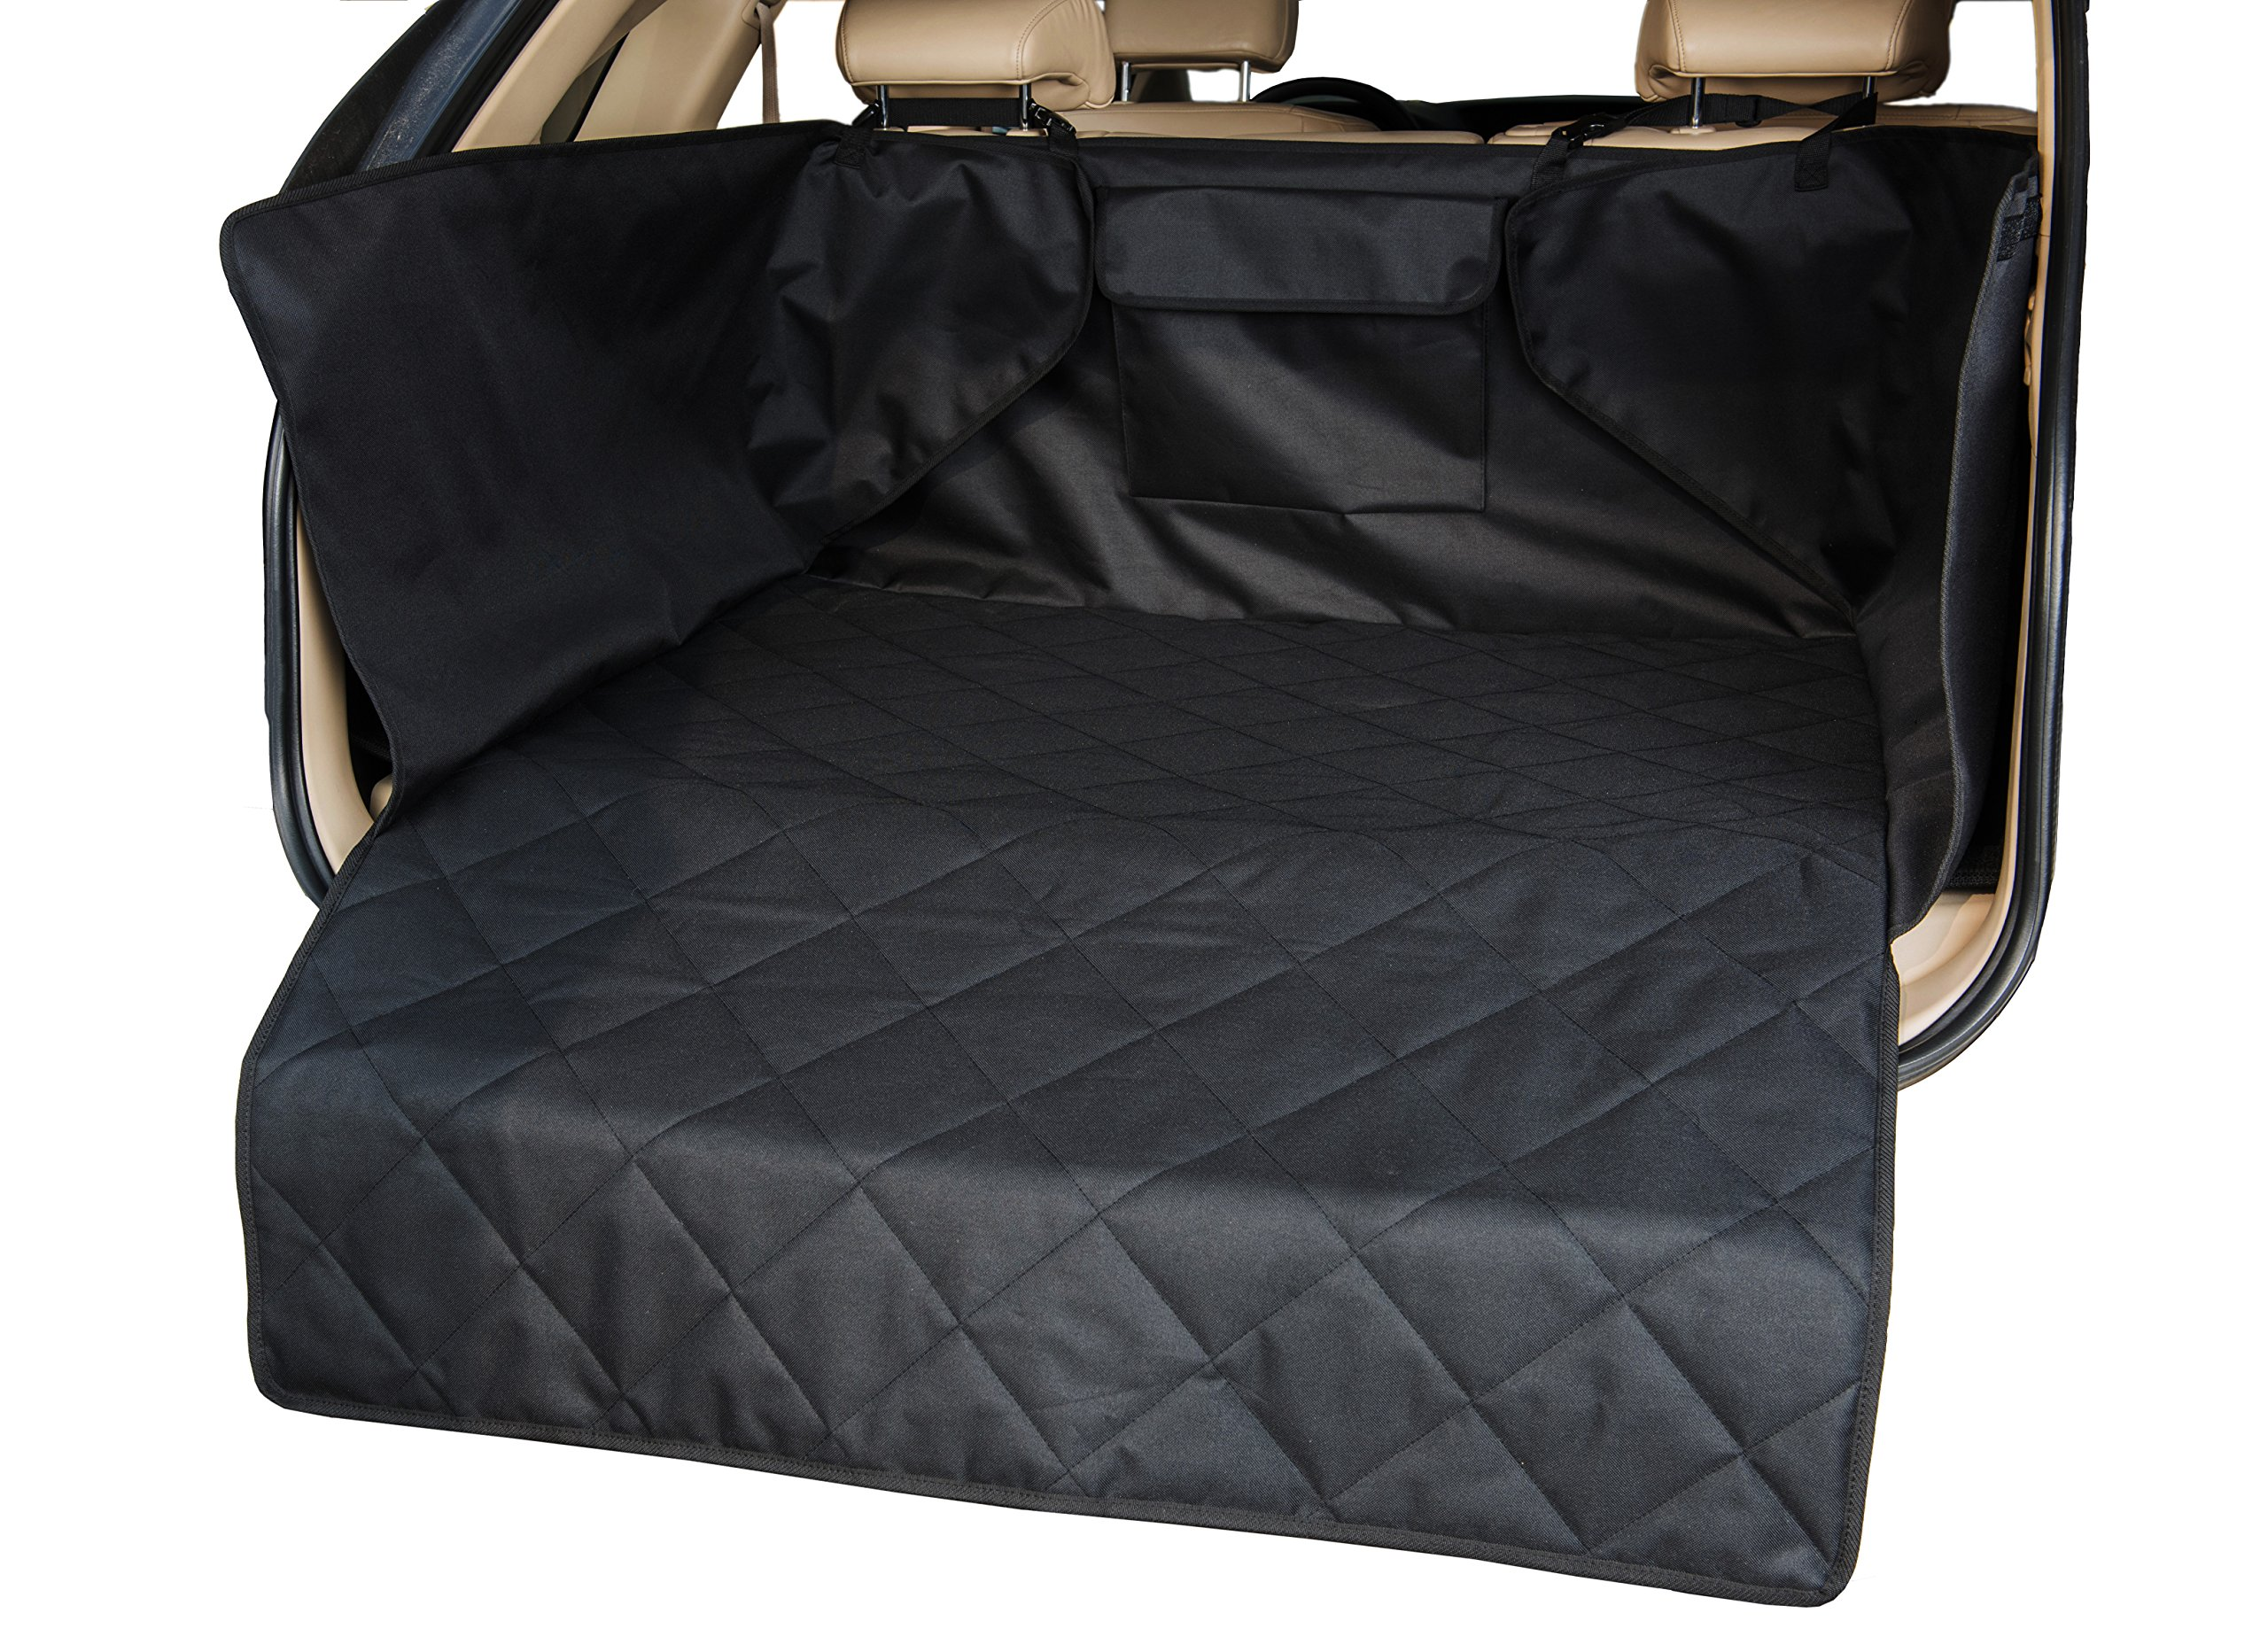 INNX Quilted SUV Dog Cargo Liner, Dog Cargo Cover for SUV, Waterproof to protect your SUV, Minivans, Jeeps (Black, 52''Lx41''Wx17.7''H)